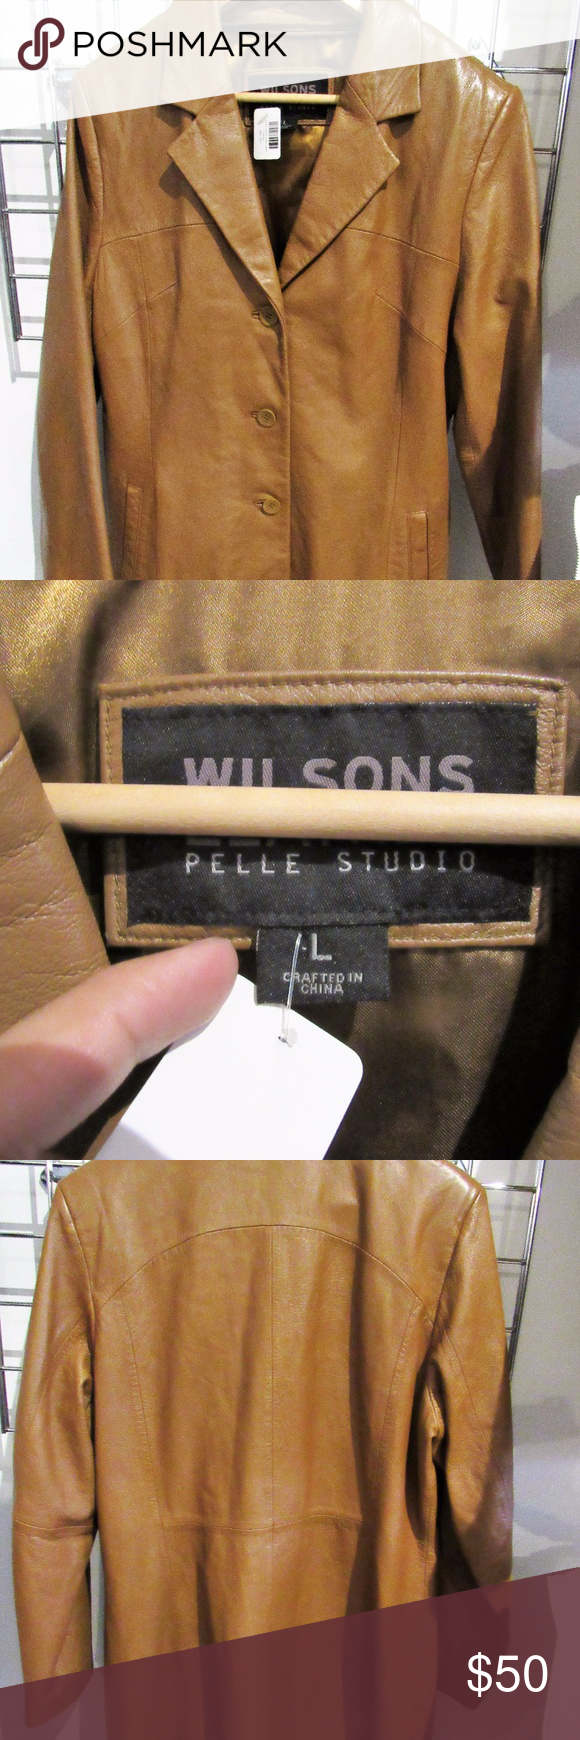 Wilson Leather Jacket! Wilson Leather Pelle Studio Women